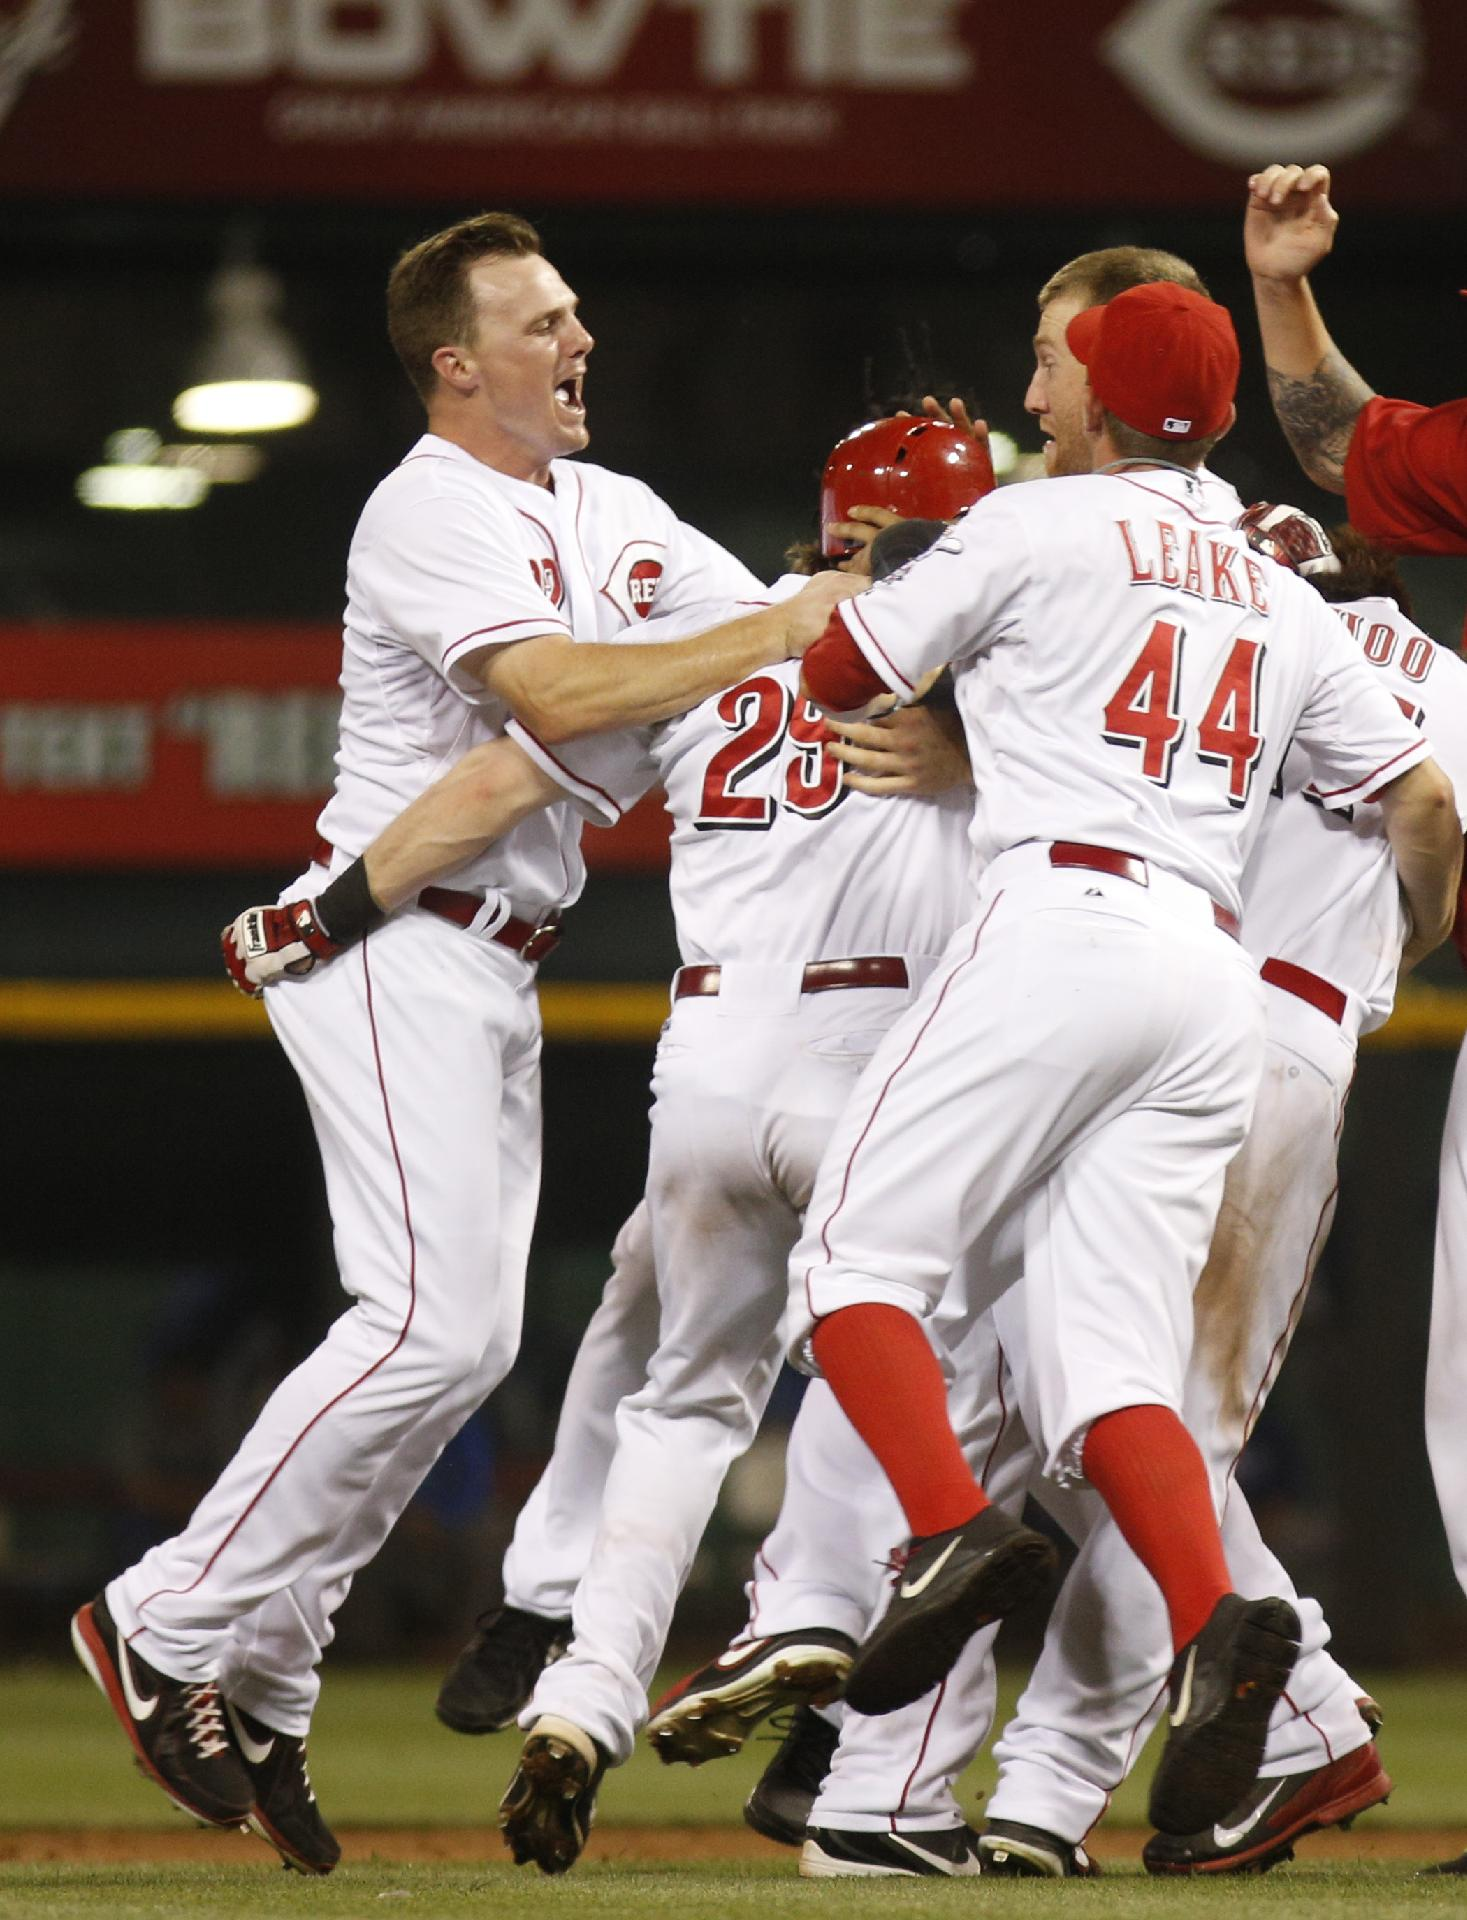 Hanigan's RBI double lifts Reds past Dodgers